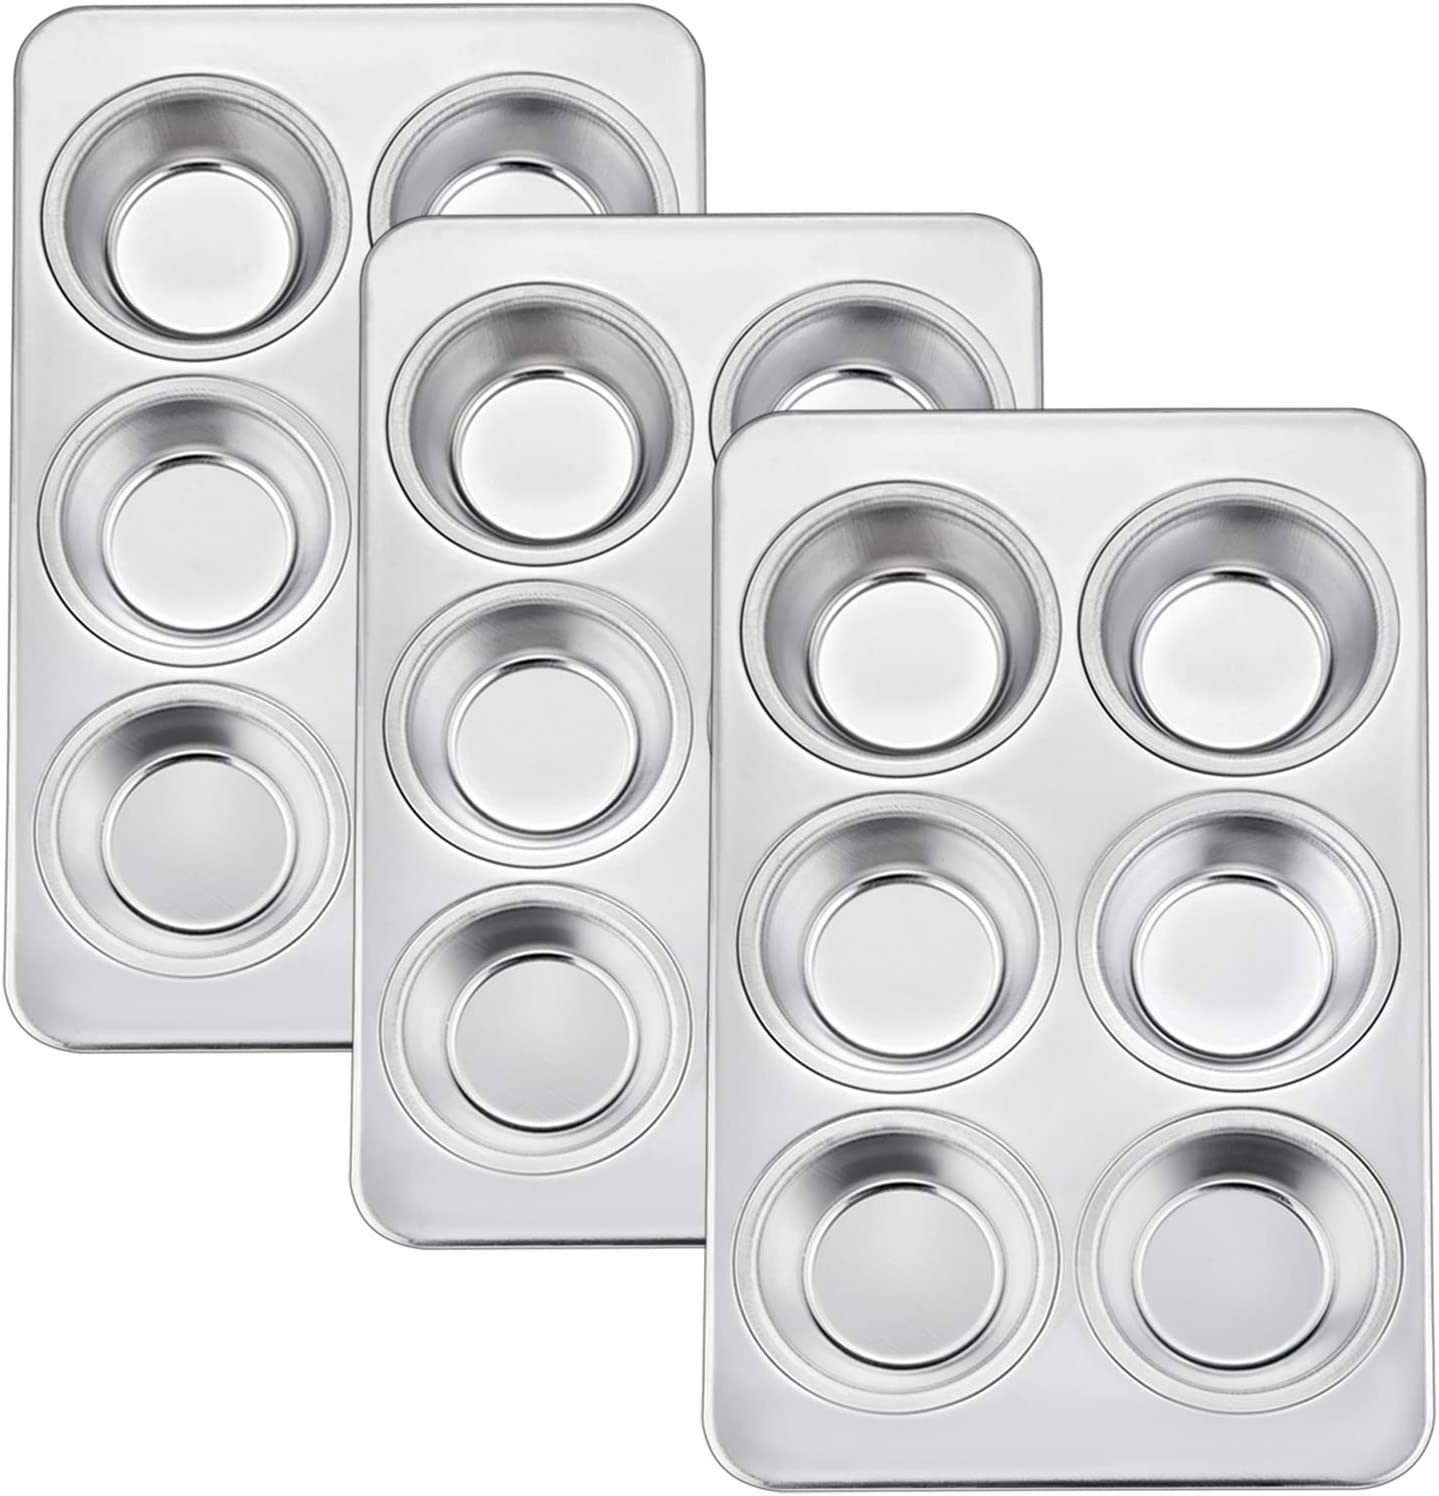 TeamFar Muffin Pan, 6 Cup Muffin Baking Tins Pans, Cupcake Pan Tray Set Stainless Steel for Baking Cakes Cornbread Tarts and More, Healthy & Non Toxic, Oven & Dishwasher Safe - Set of 3